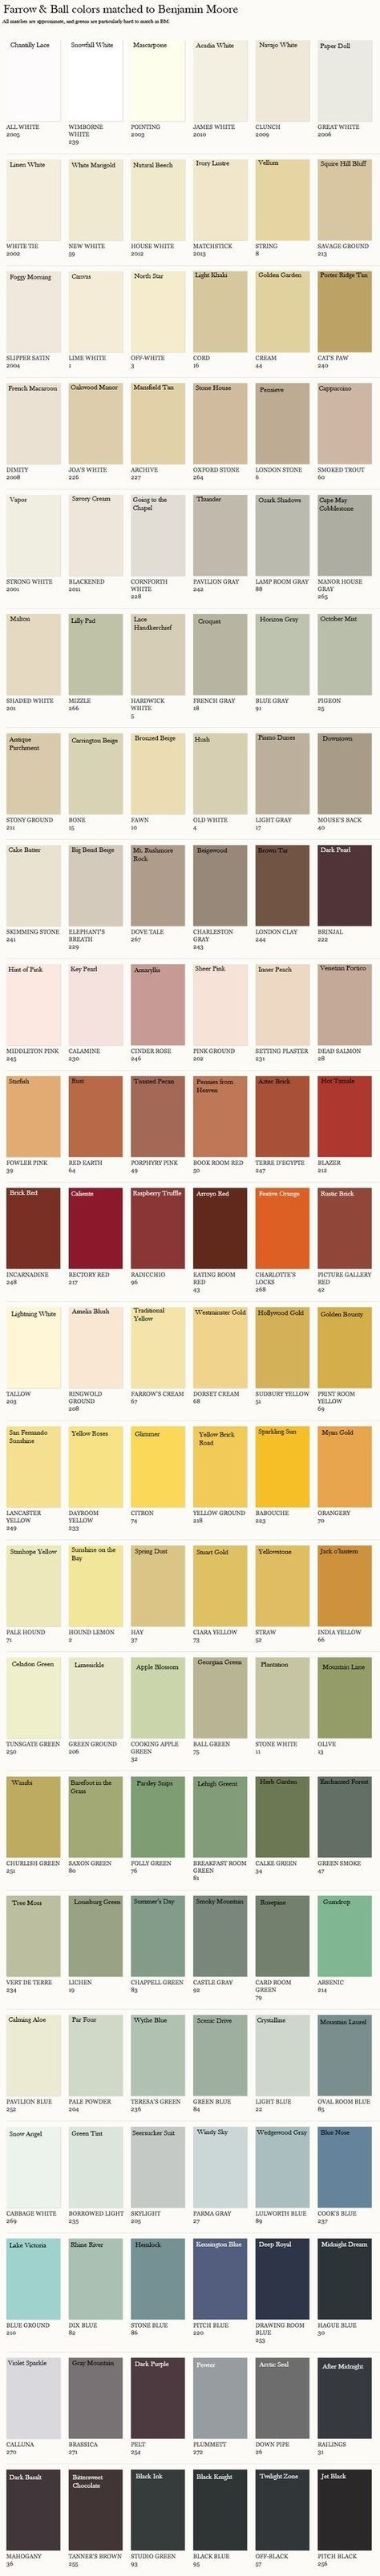 8 best chromarty 285 farrow ball paints images on pinterest master bedrooms attic. Black Bedroom Furniture Sets. Home Design Ideas